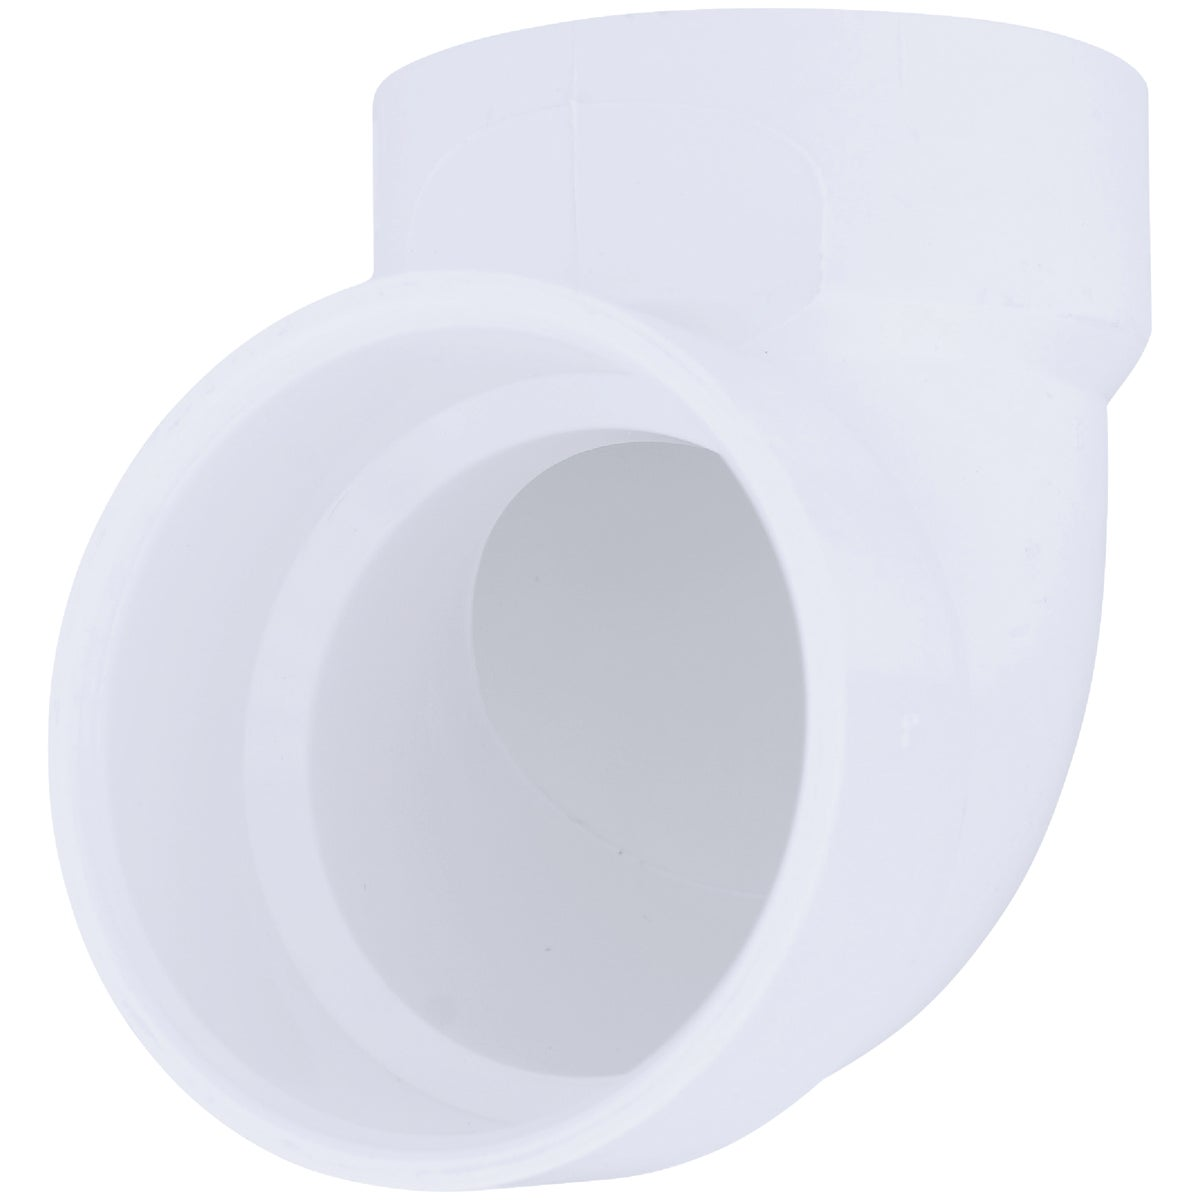 "2"" 90 PVC-DWV VENT ELBOW - 70720 by Genova Inc  Pvc Dwv"